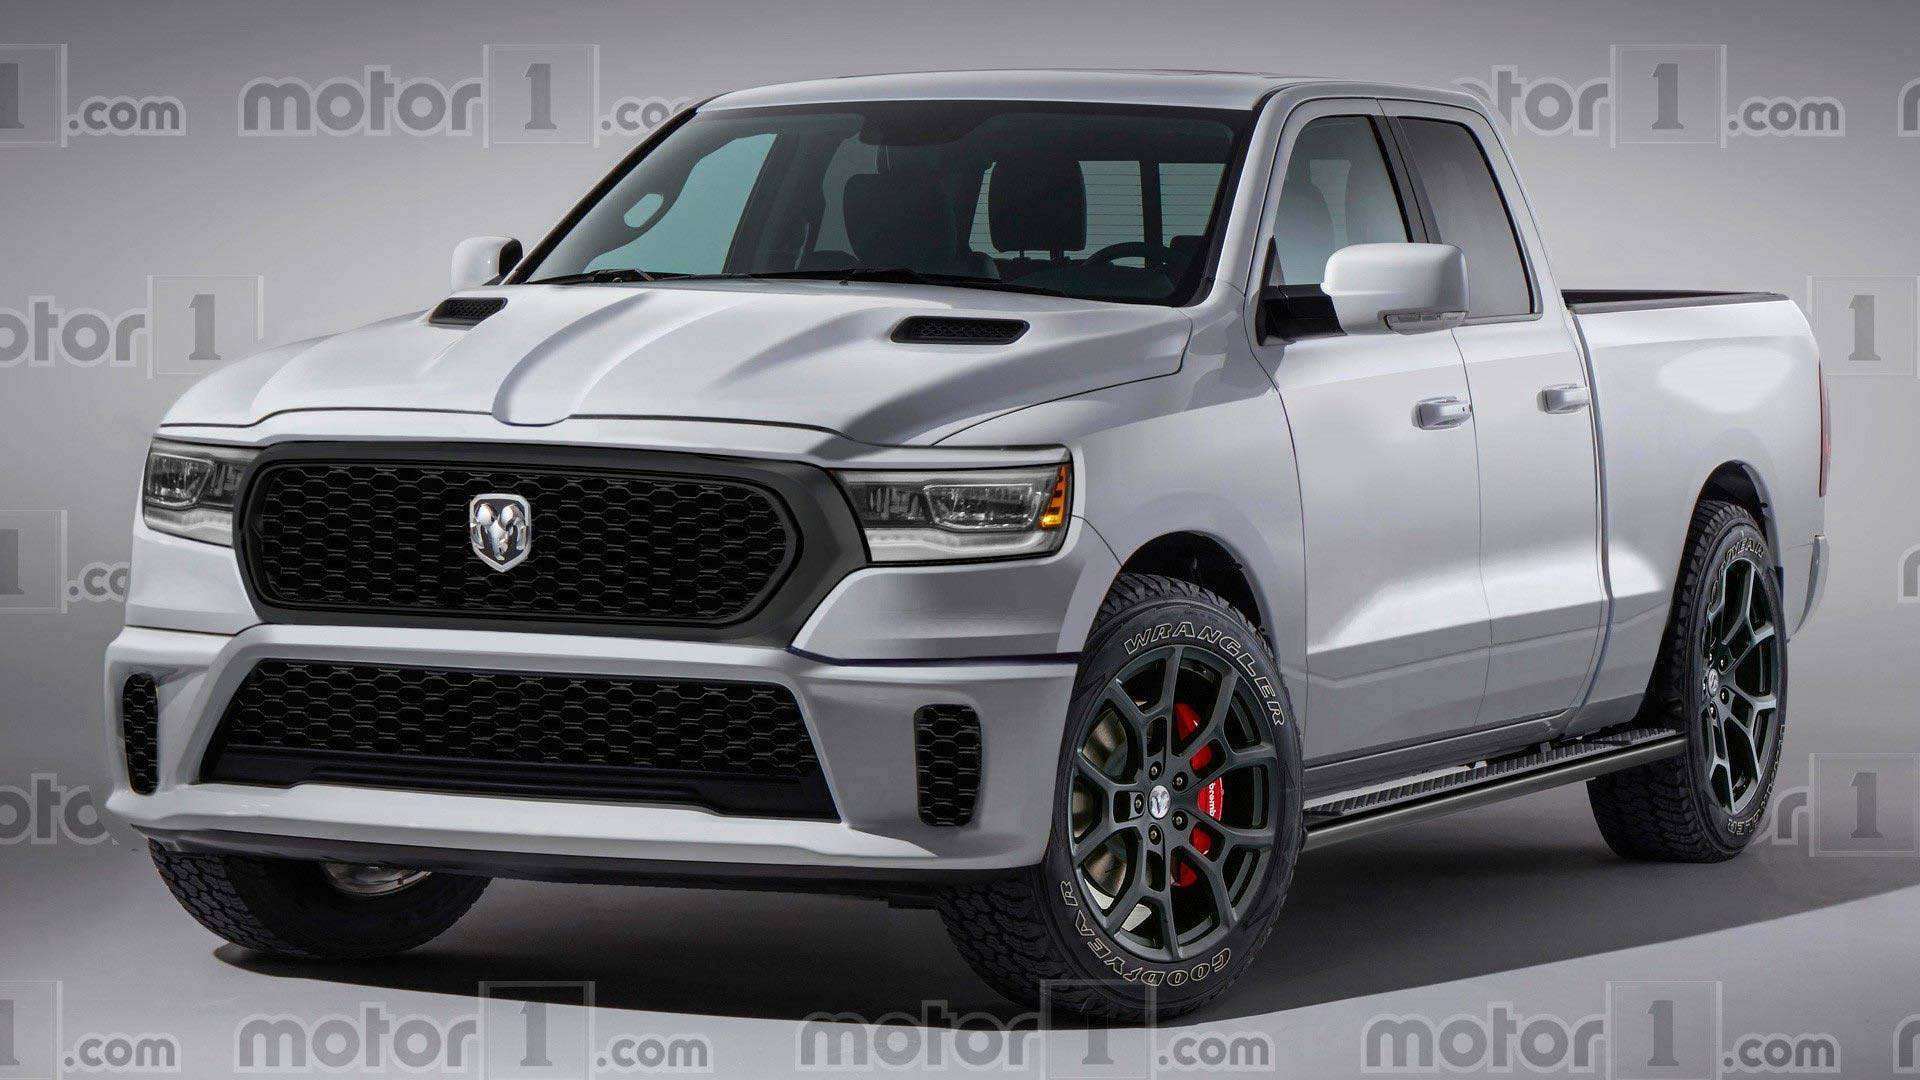 76 The Best 2020 Dodge Ram Truck New Model And Performance